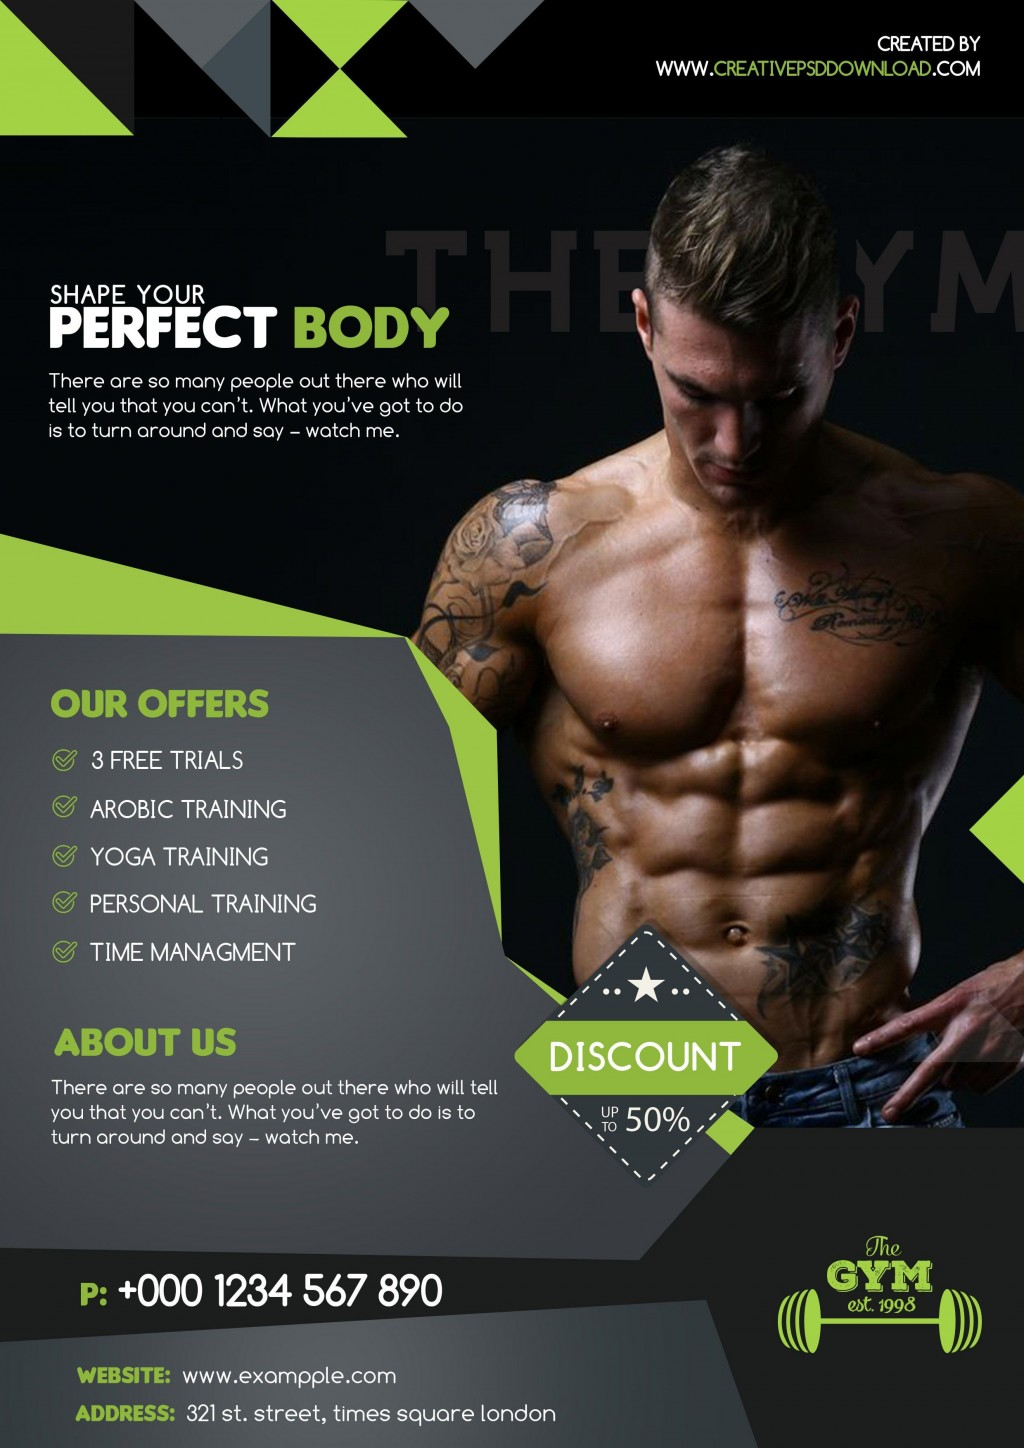 009 Outstanding Personal Trainer Flyer Template Inspiration  Word PsdLarge